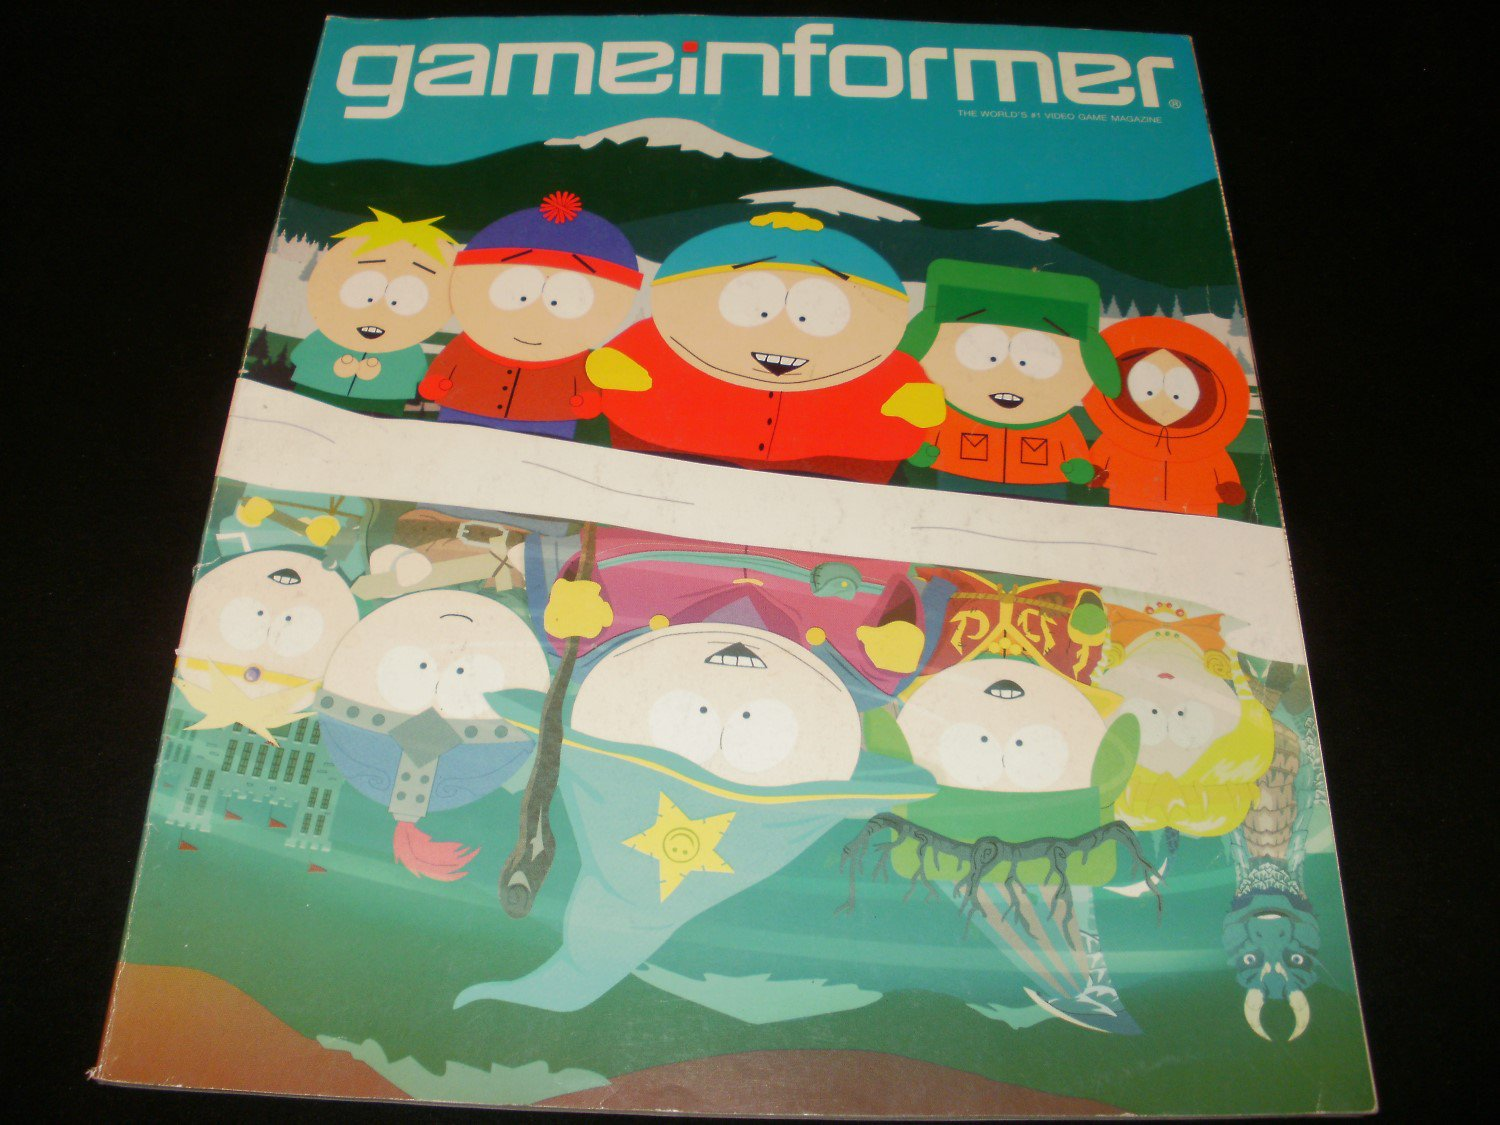 Game Informer Magazine - January 2012 - Issue 225 - South Park